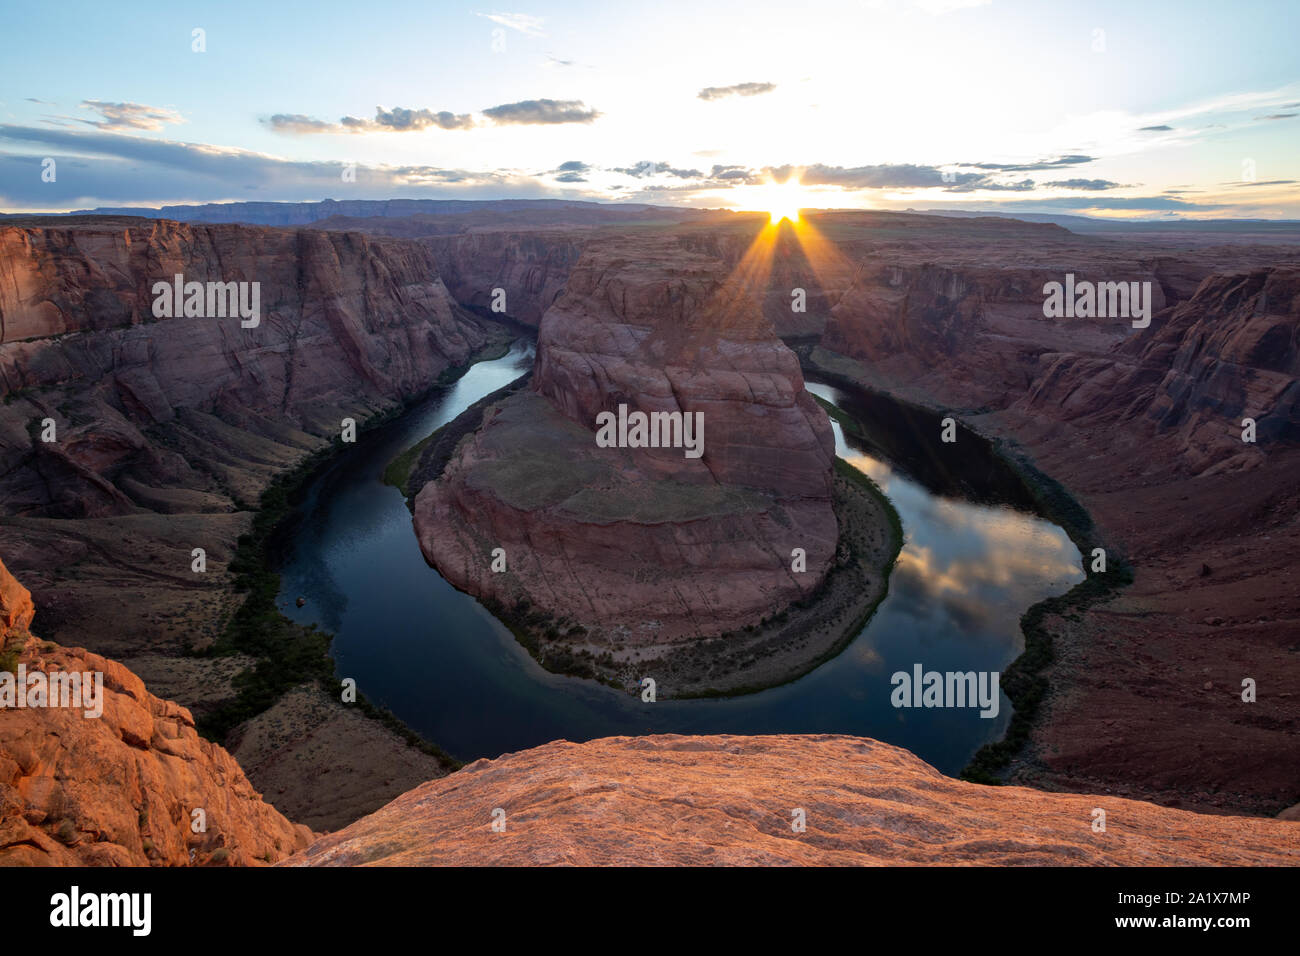 Horseshoe Bend is a horseshoe-shaped incised meander of the Colorado River located near the town of Page, Arizona, United States. Travel USA, bucket l Stock Photo